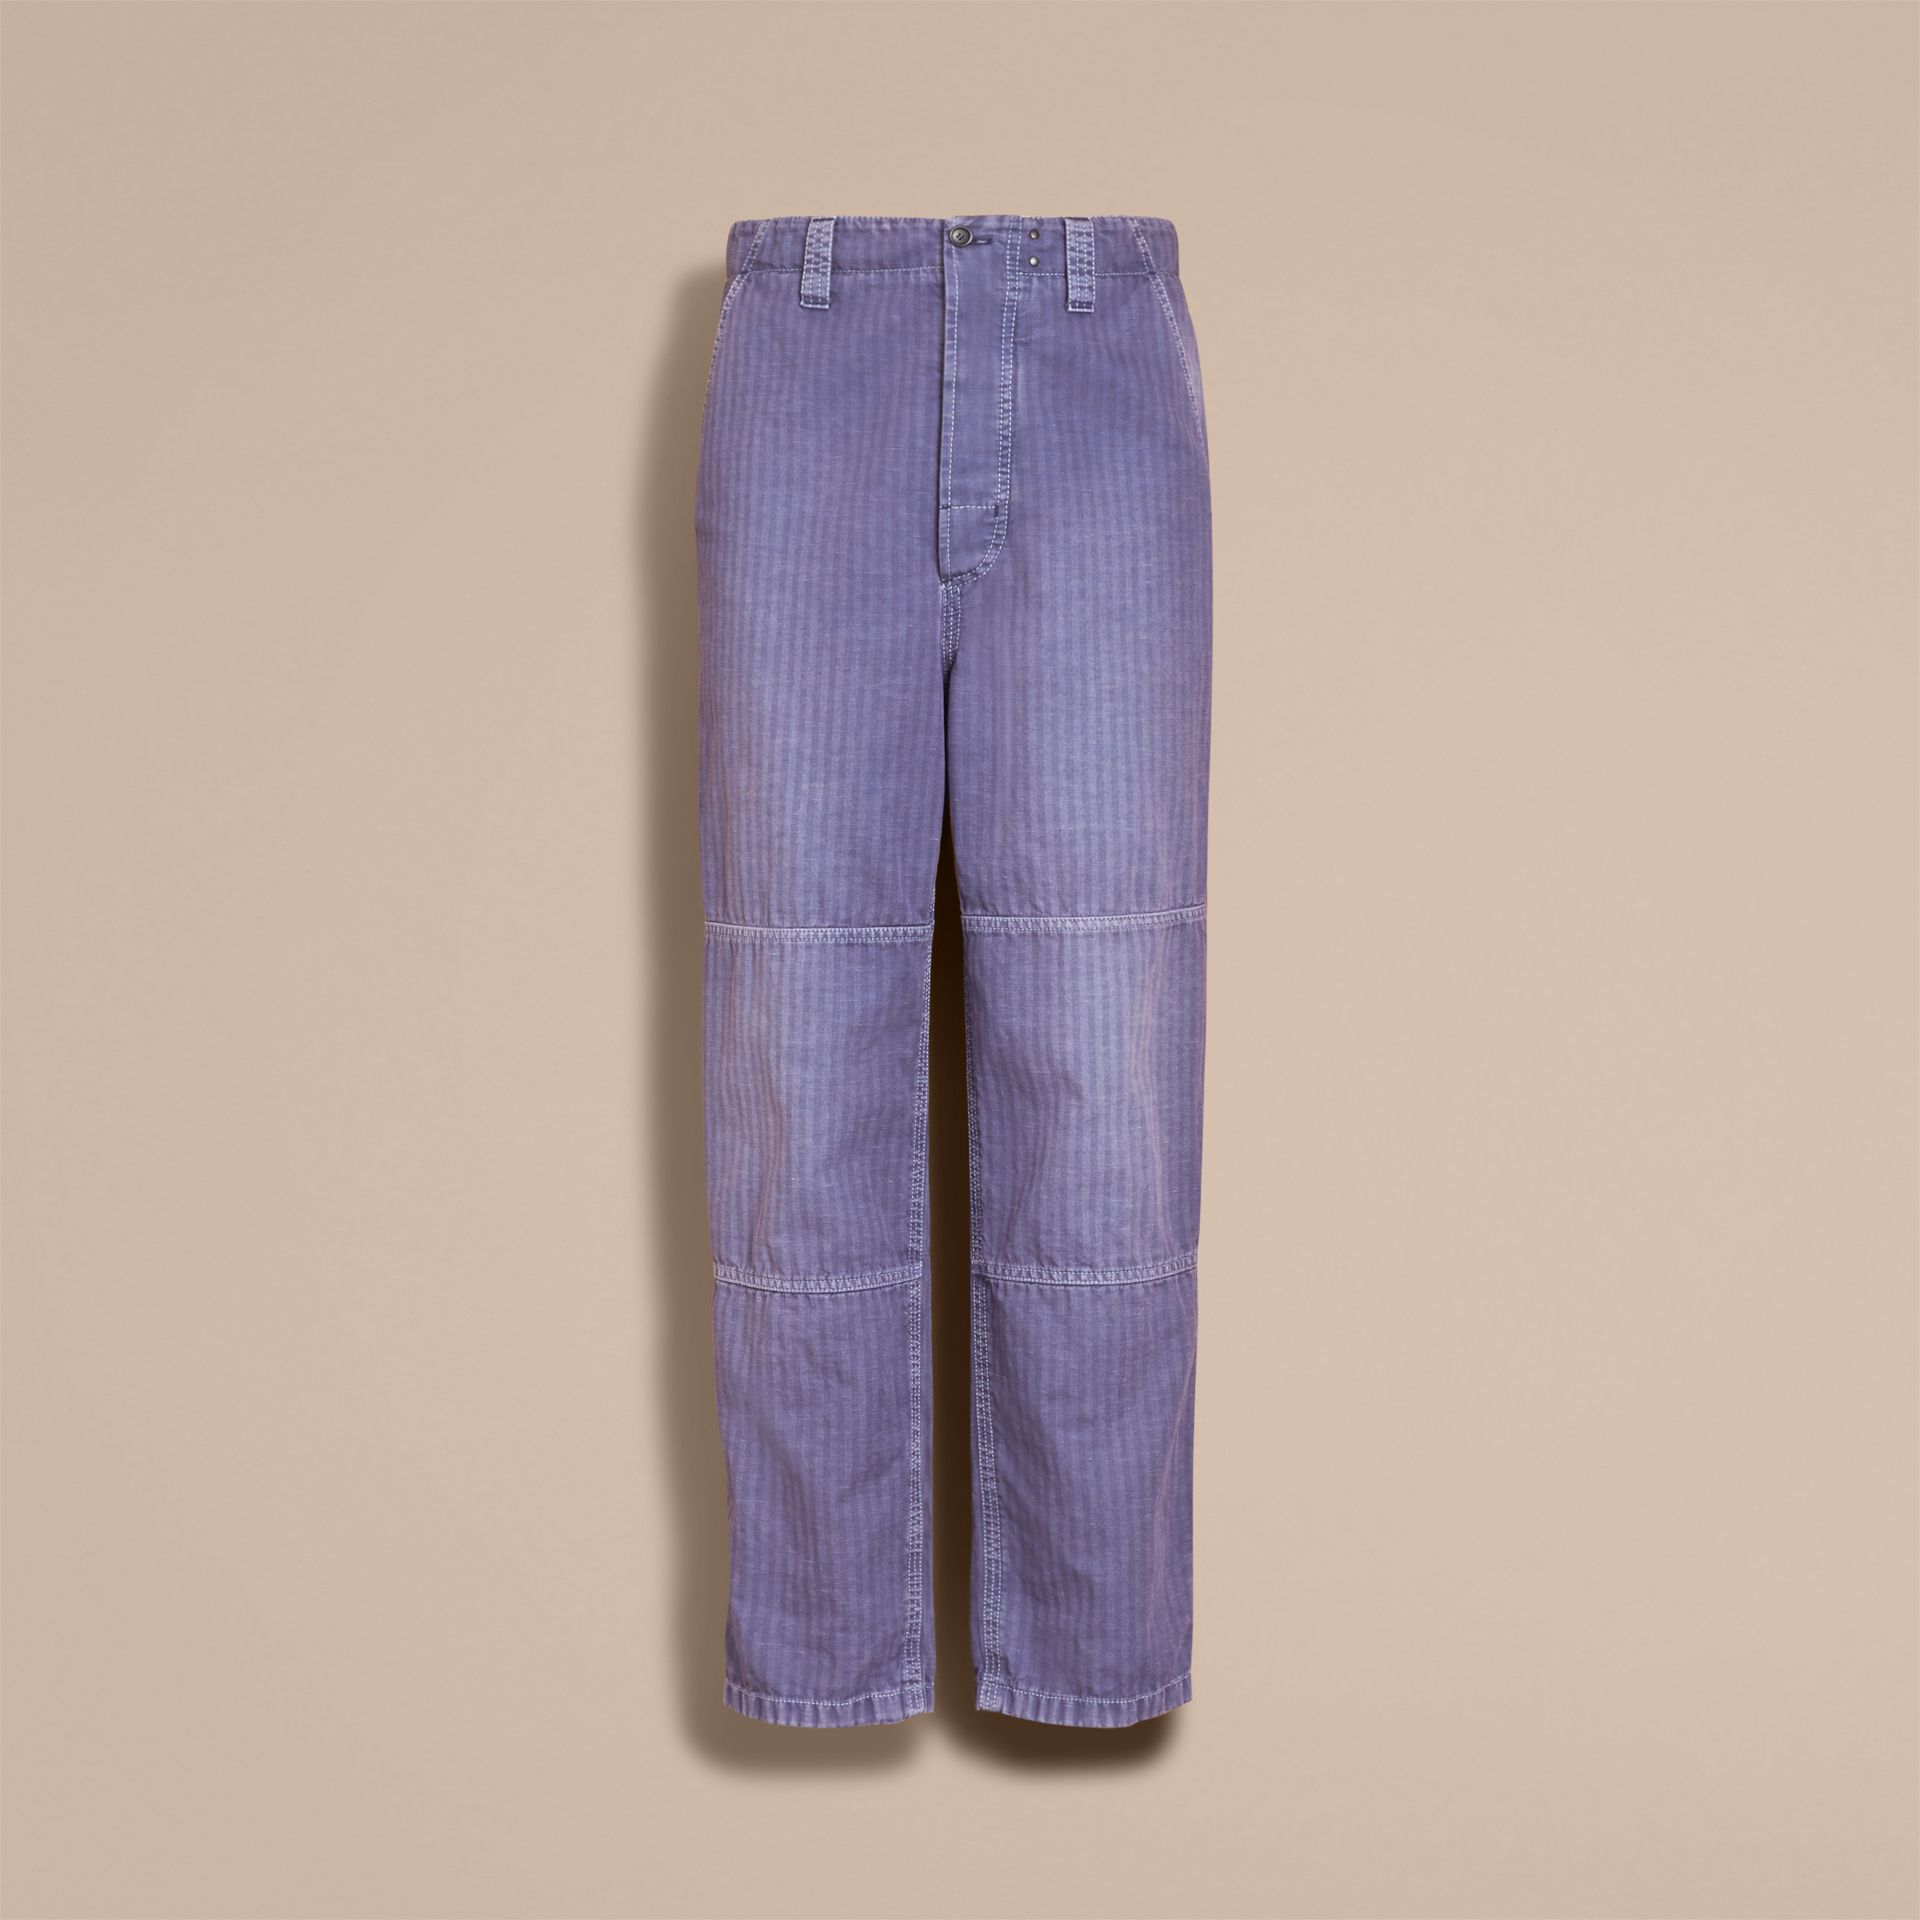 Herringbone Cotton Linen Cropped Workwear Trousers in Indigo - Men | Burberry United States - gallery image 3